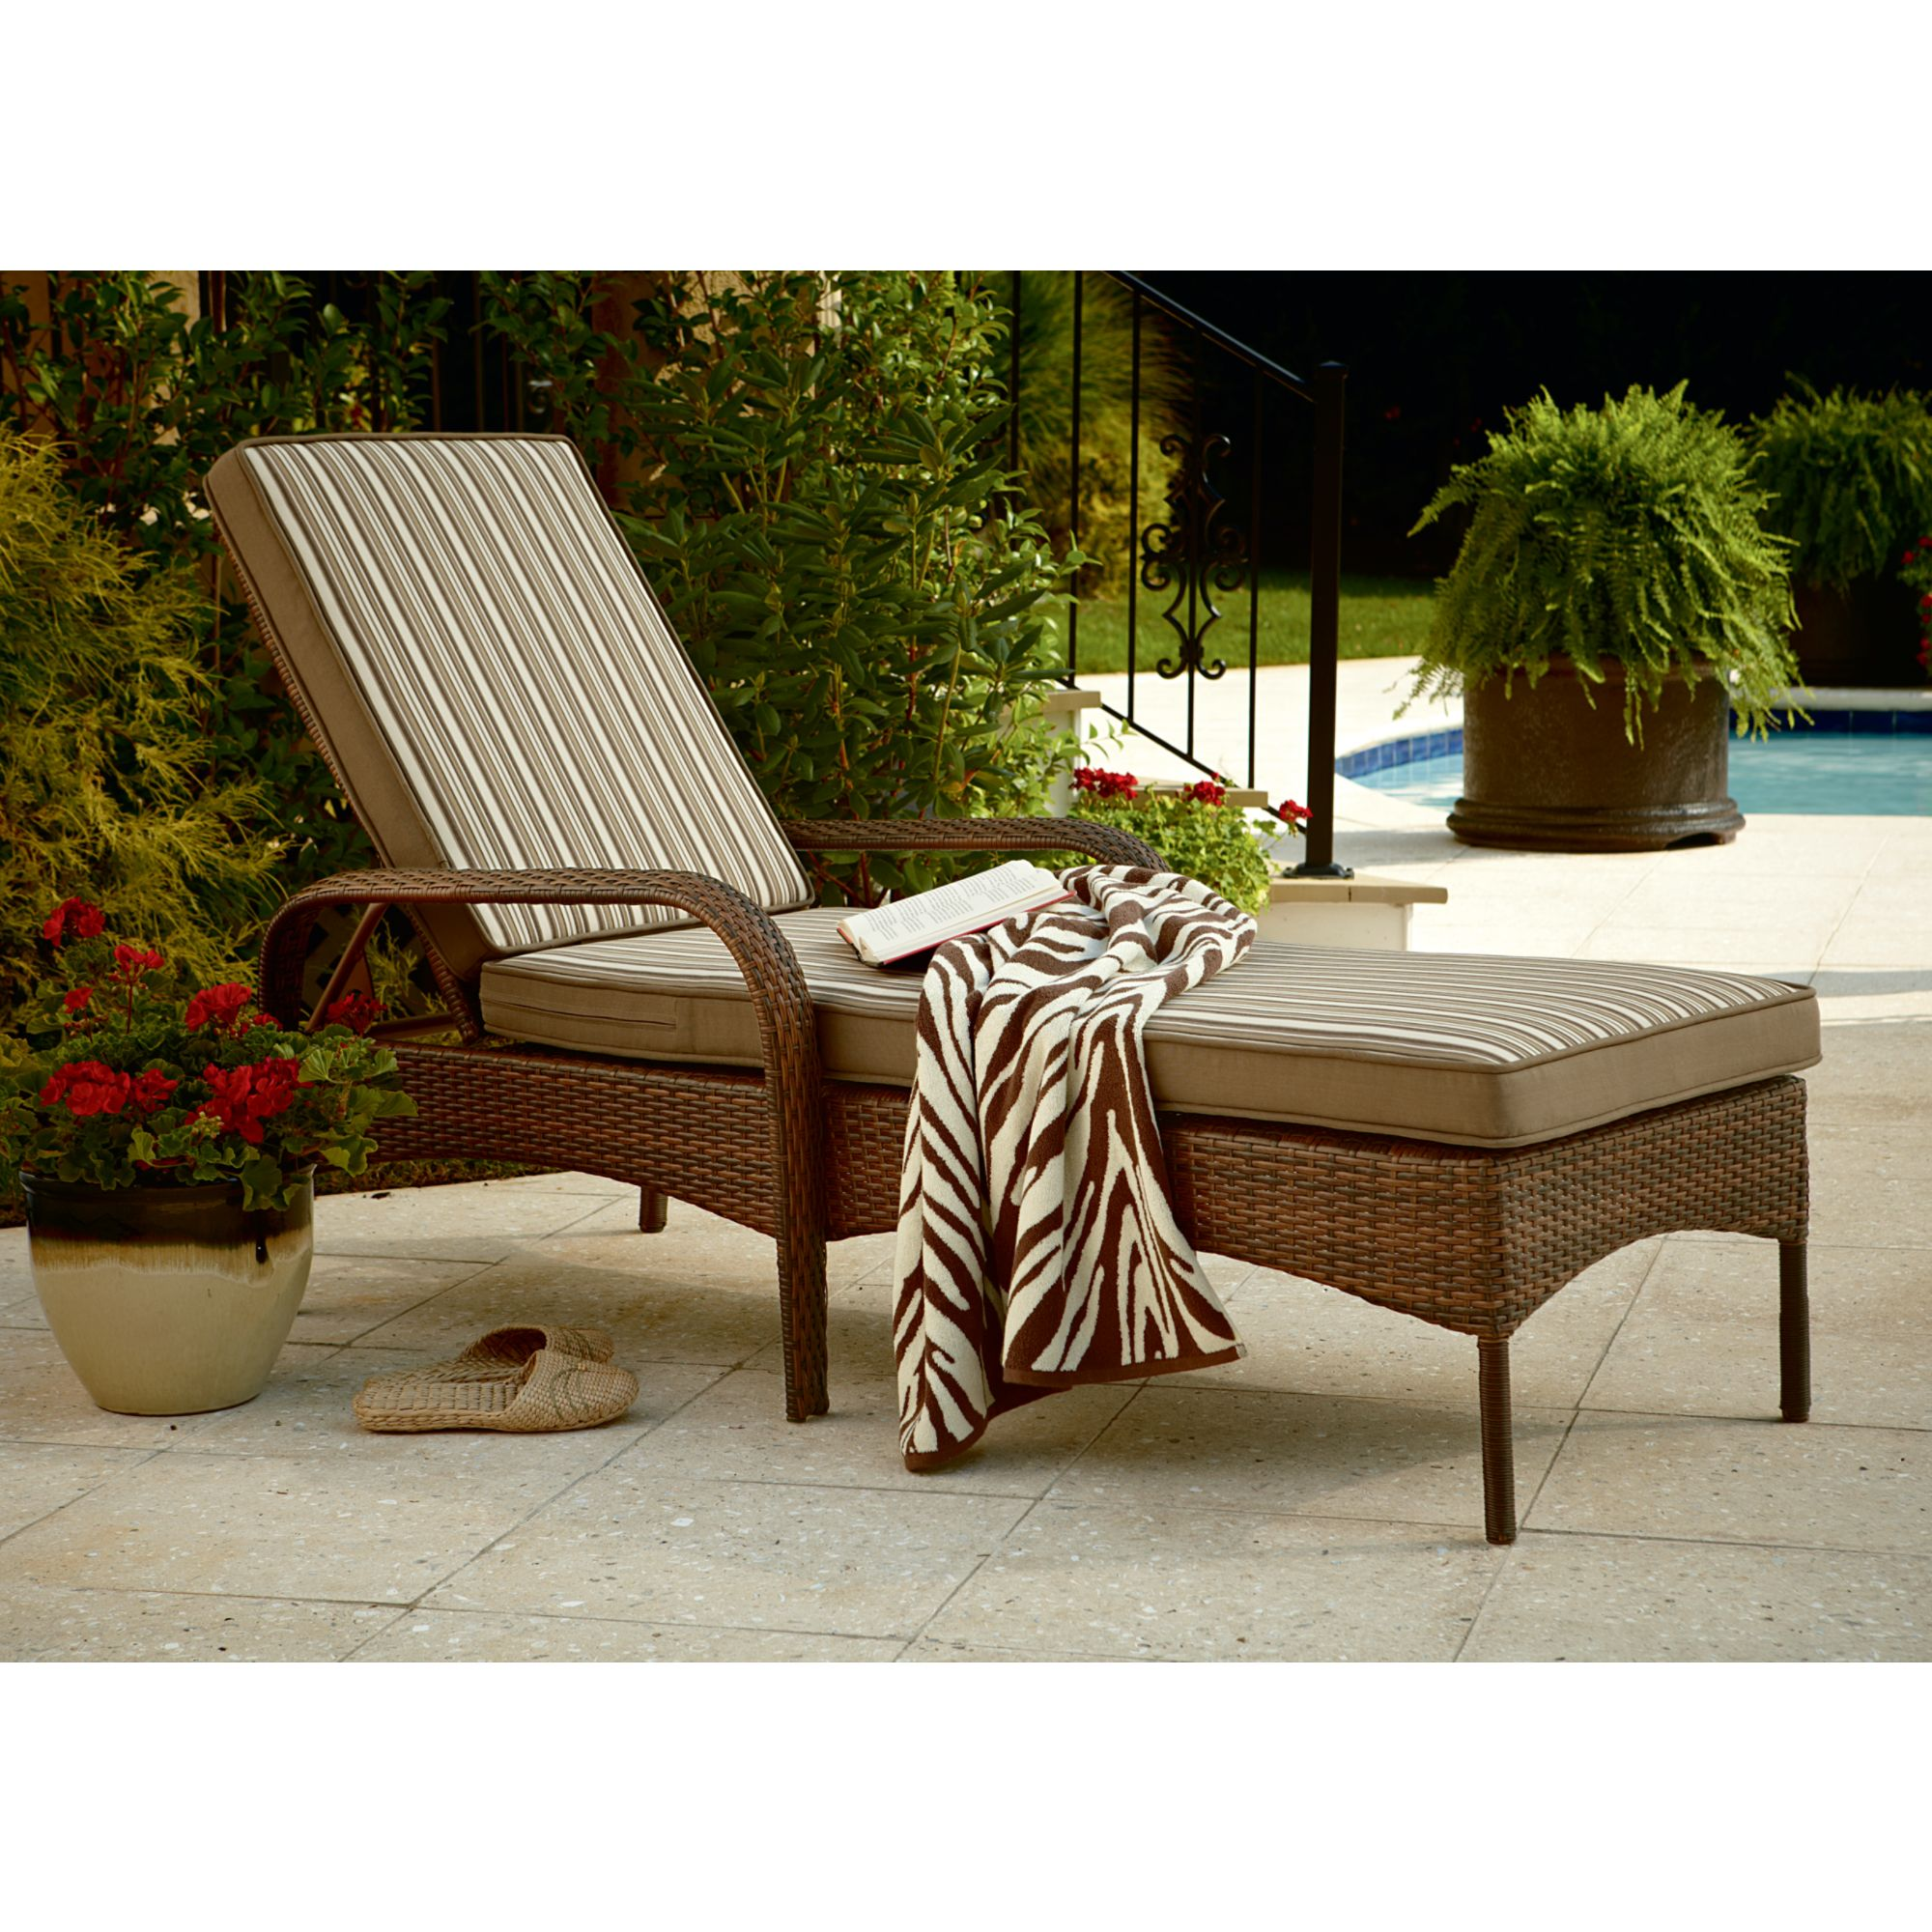 Sears Wicker Patio Furniture | Sears Patio Furniture Replacement Cushions | Sears Patio Furniture